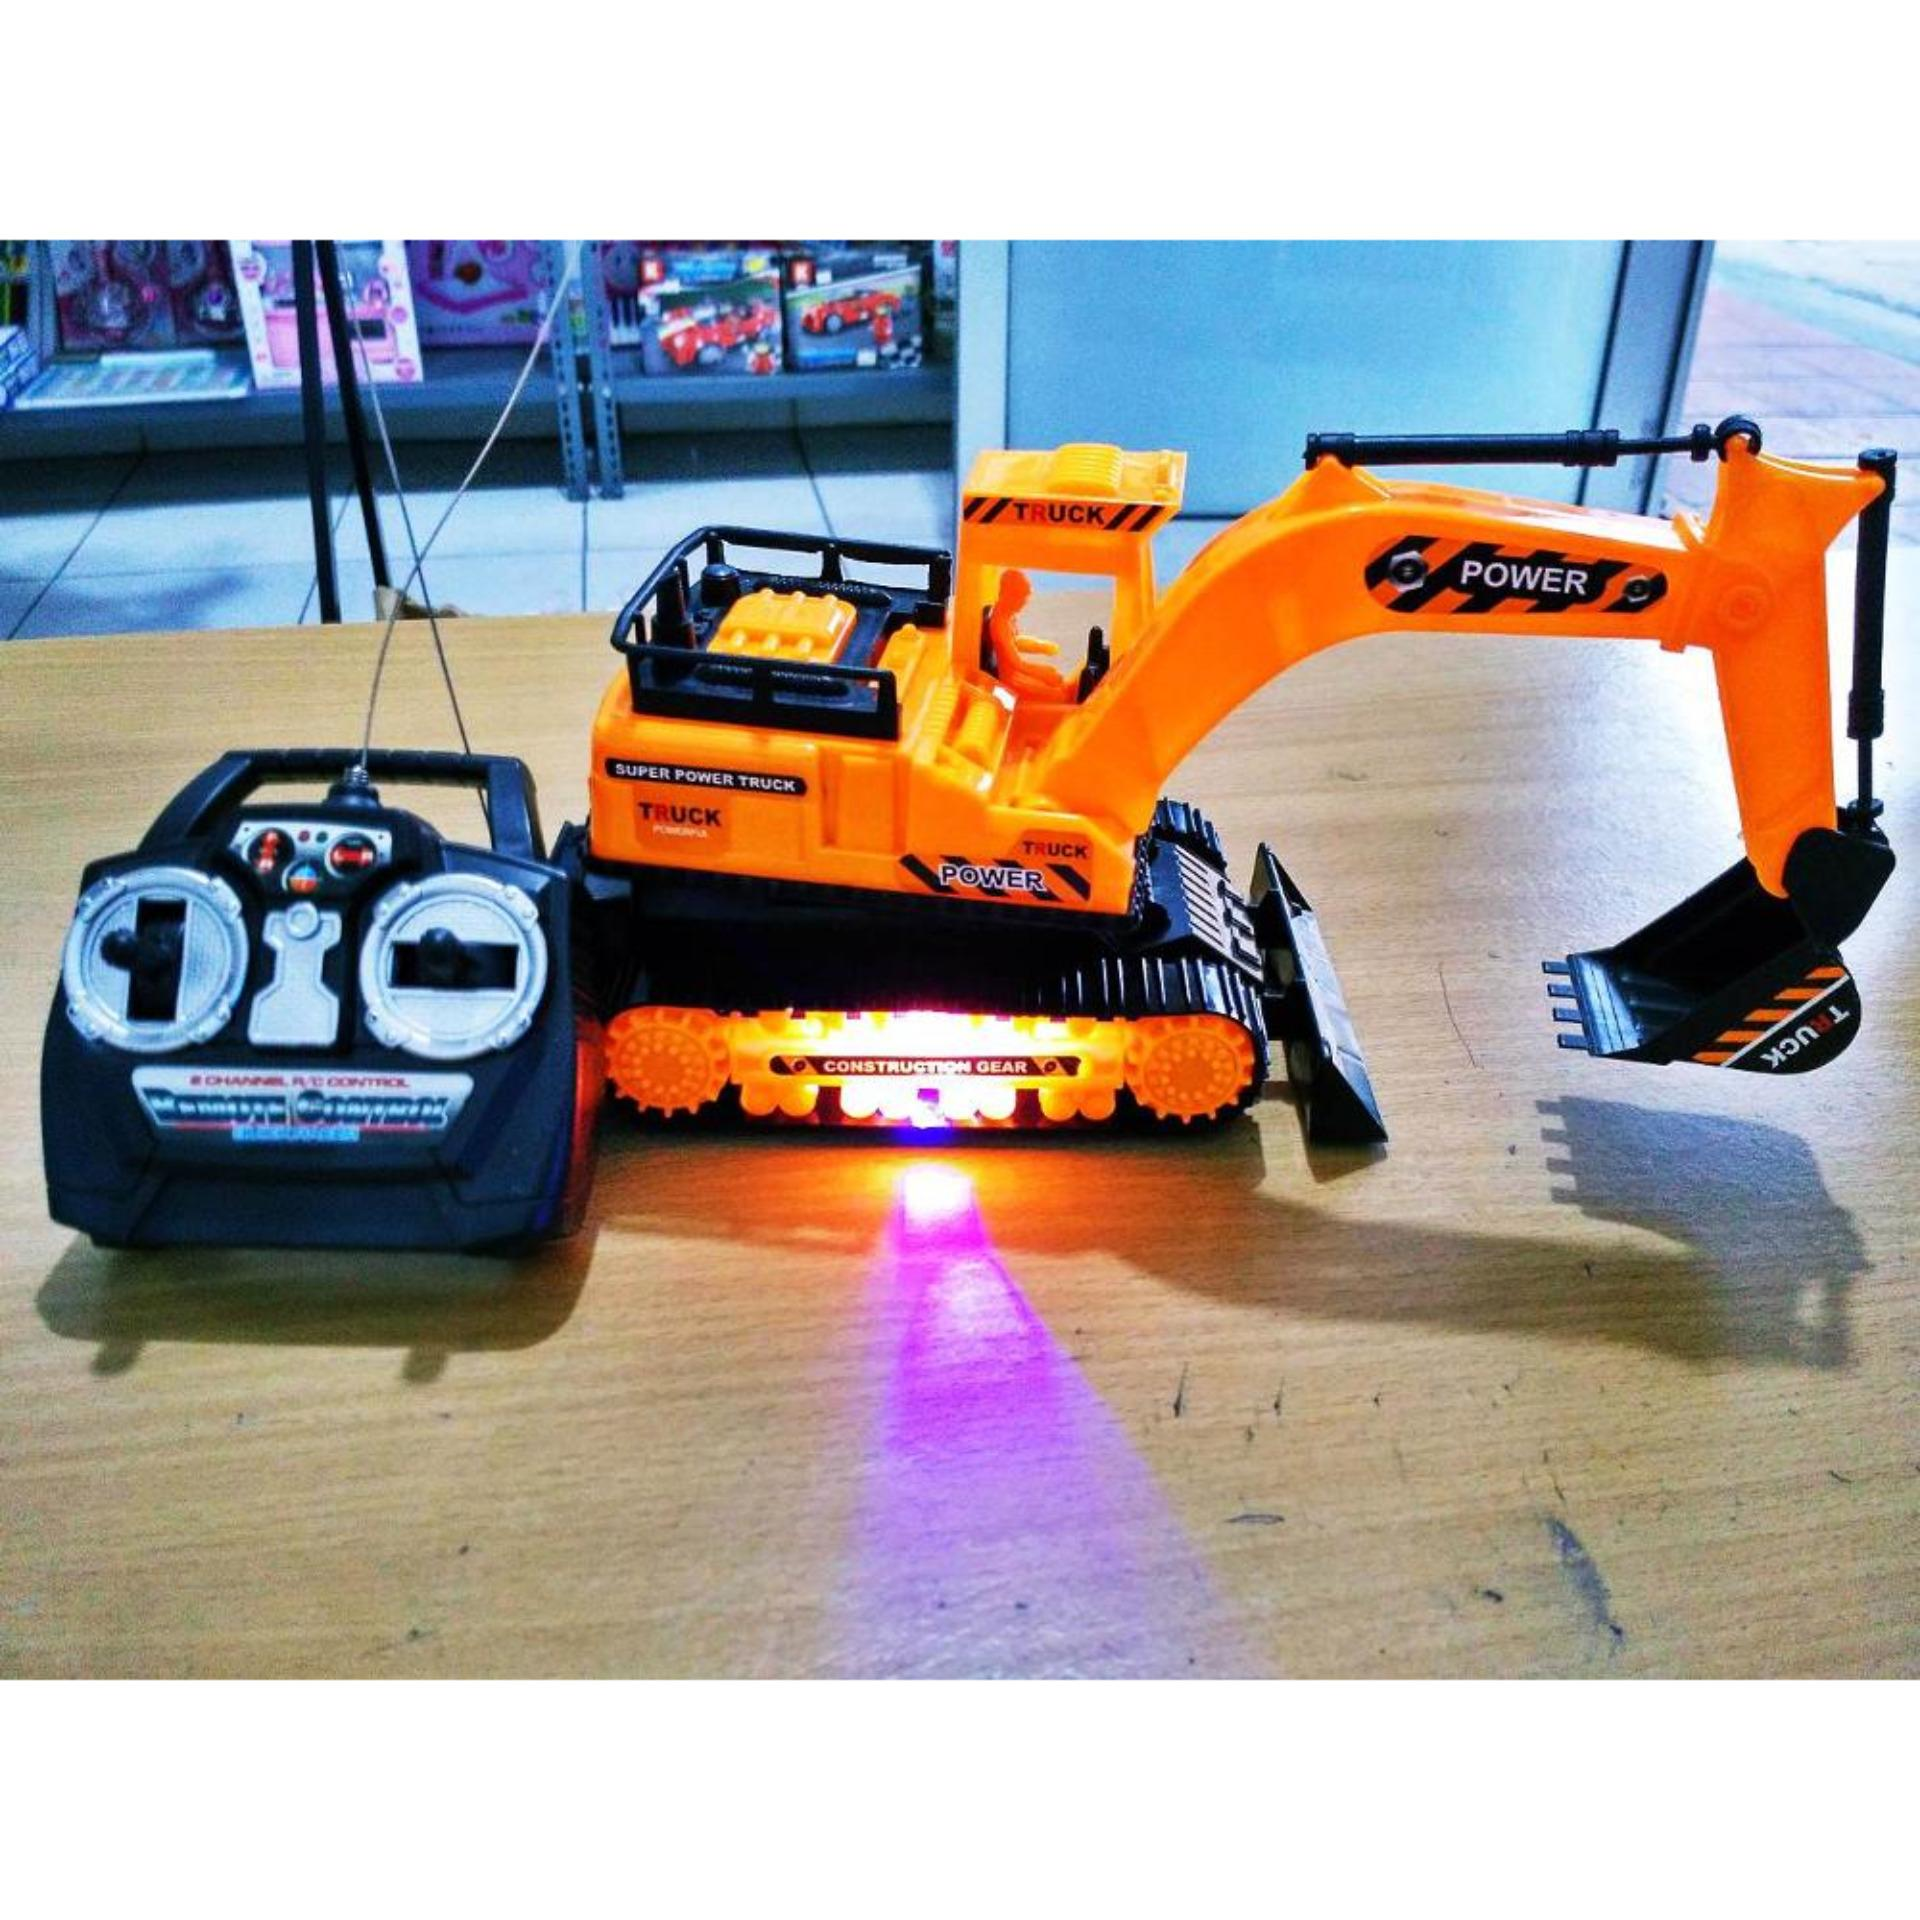 ... Rc Excavator Rc Construction Super Power Truck